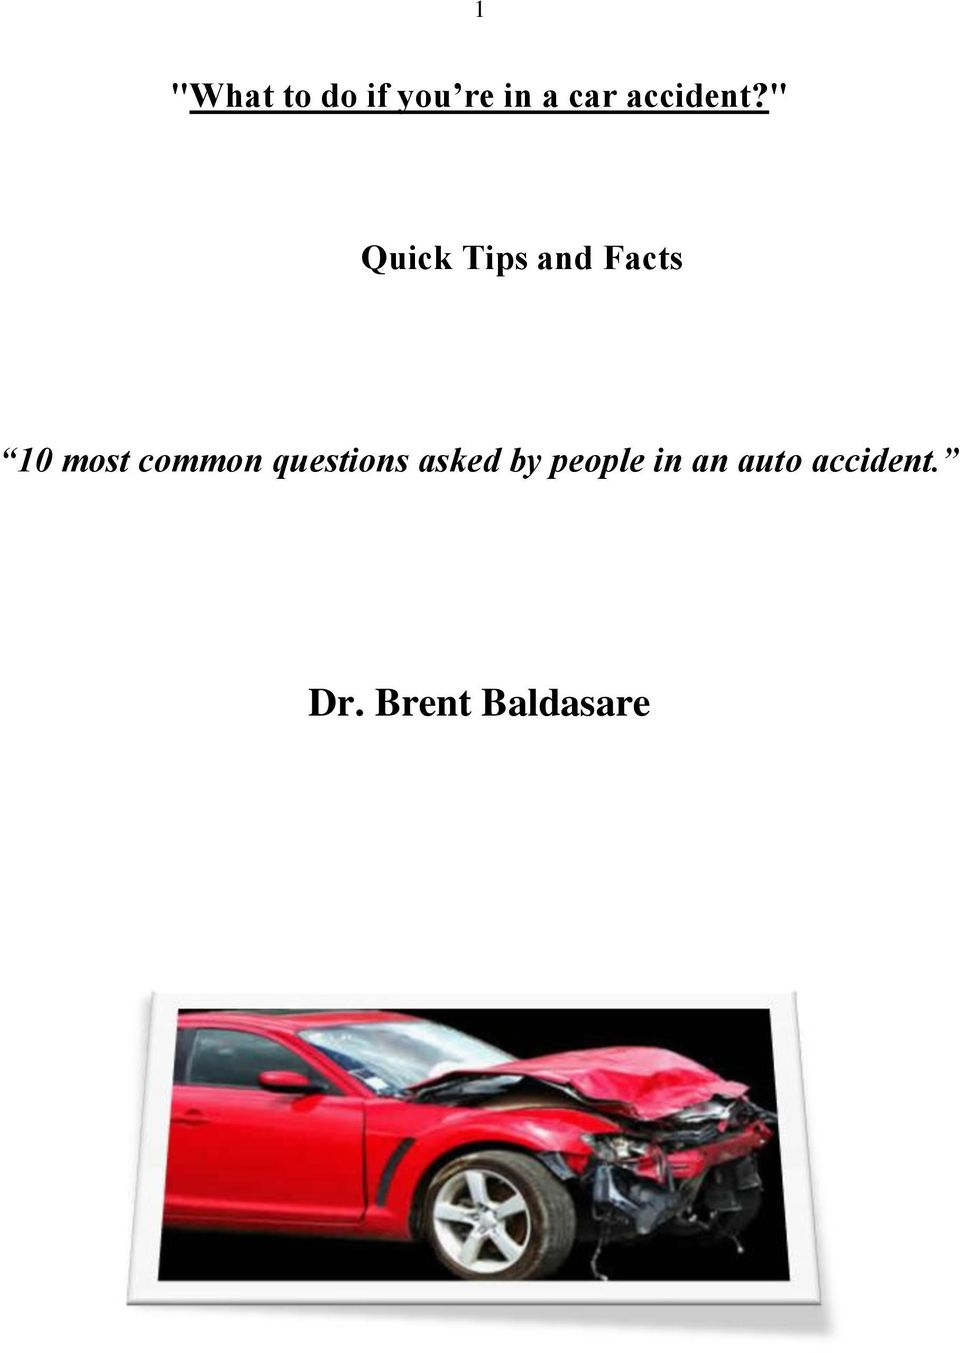 """ Quick Tips and Facts 10 most"